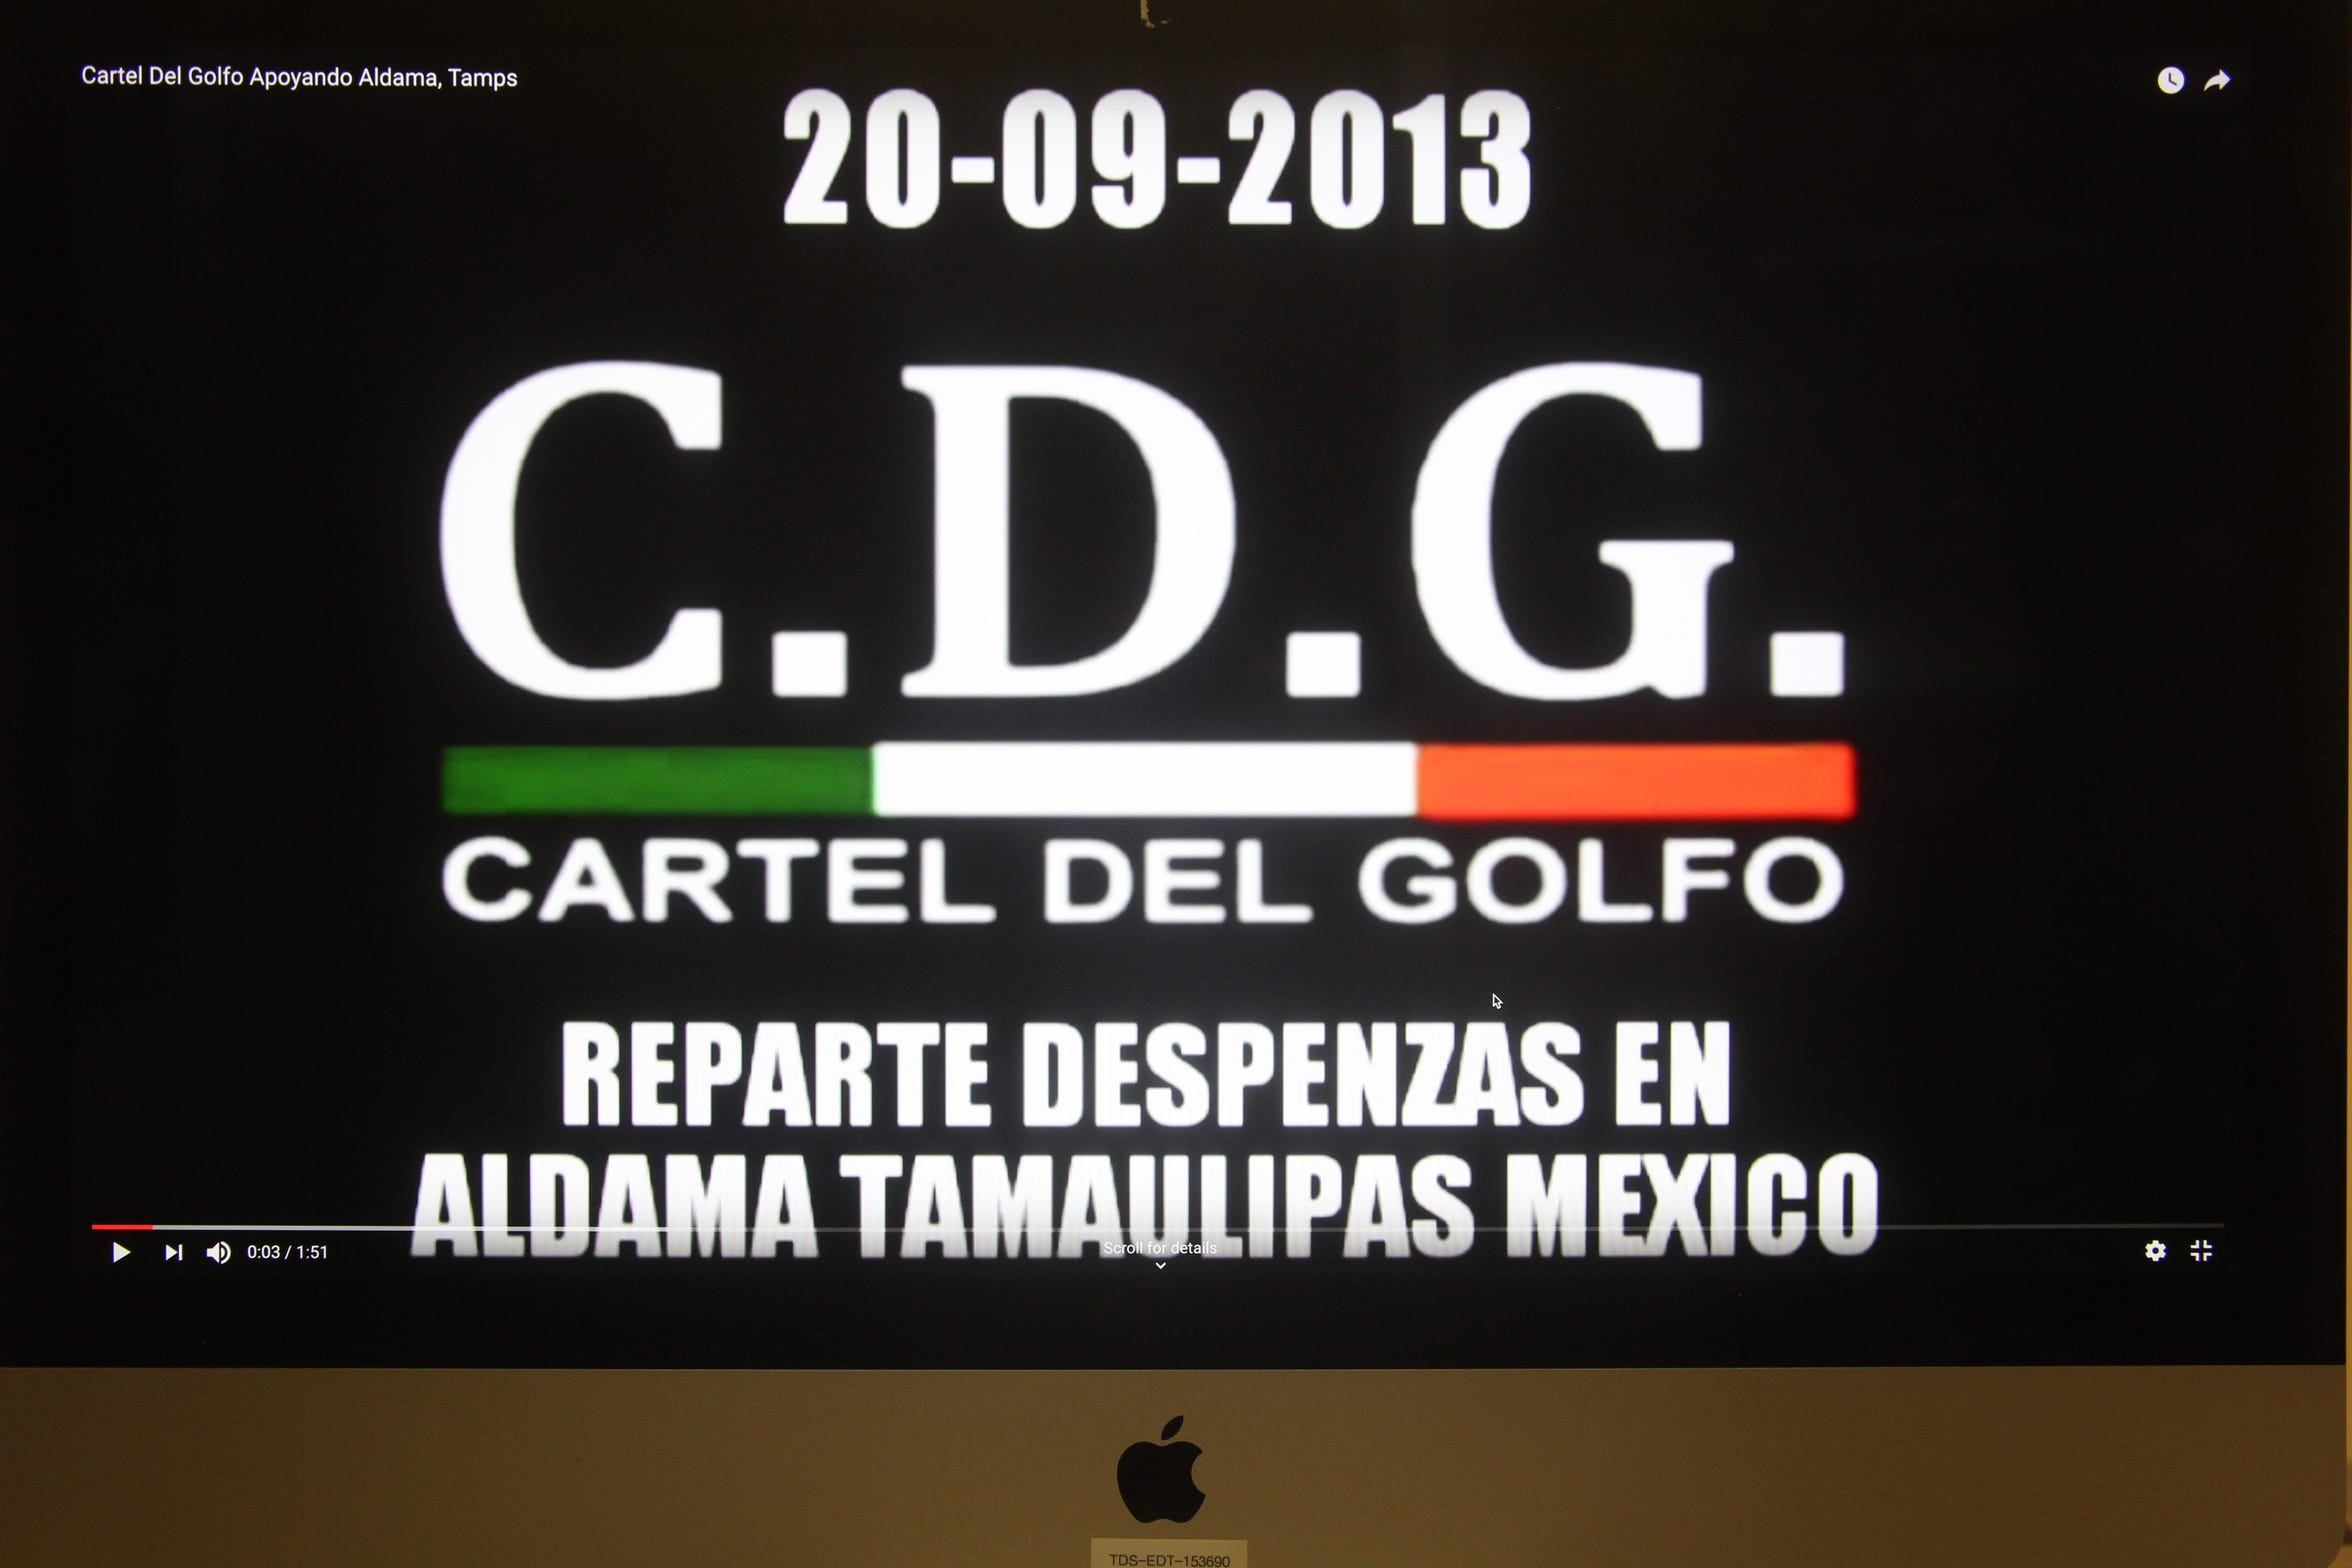 The cartels use YouTube and social media to boast about helping people, like when the Gulf Cartel distributed food and clothing to hurricane victims in 2013.